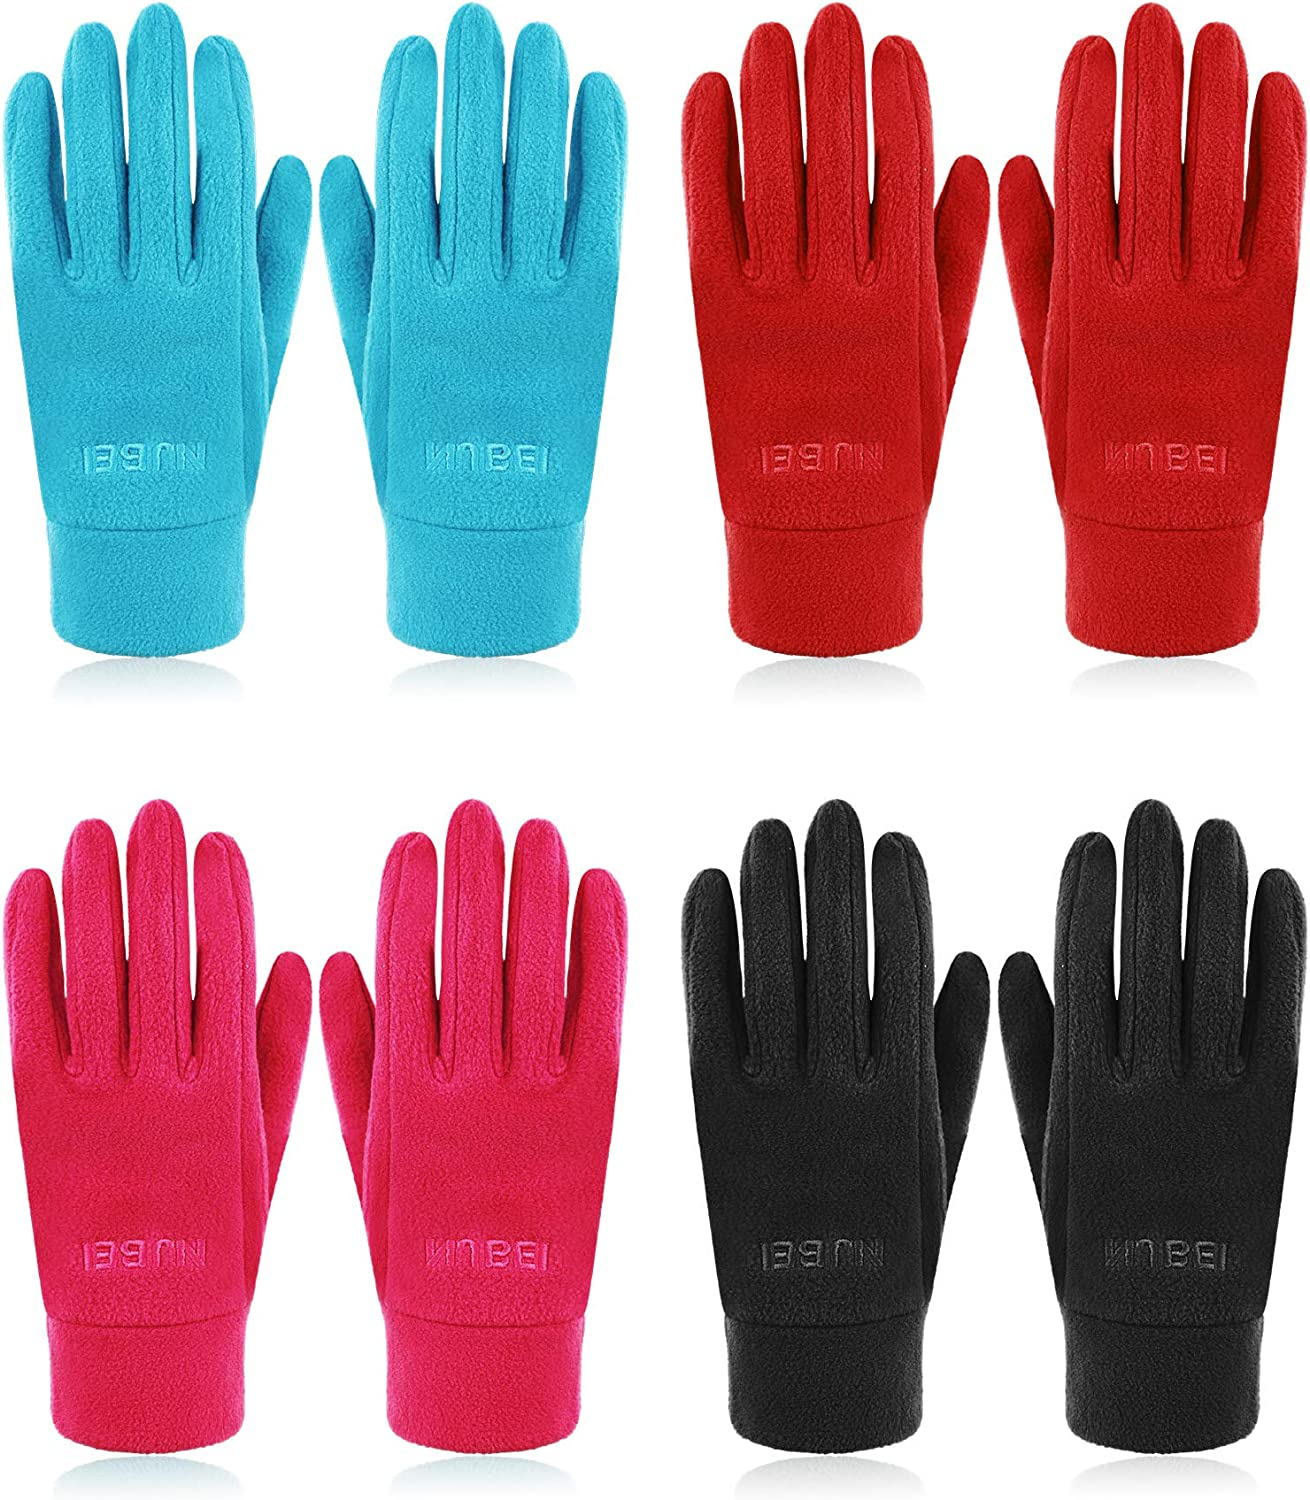 4 Pairs Adult Fleece Gloves Winter Warm Mittens Thick Full Finger Gloves, 4 Colors (Black, Rose Red, Red, Blue)